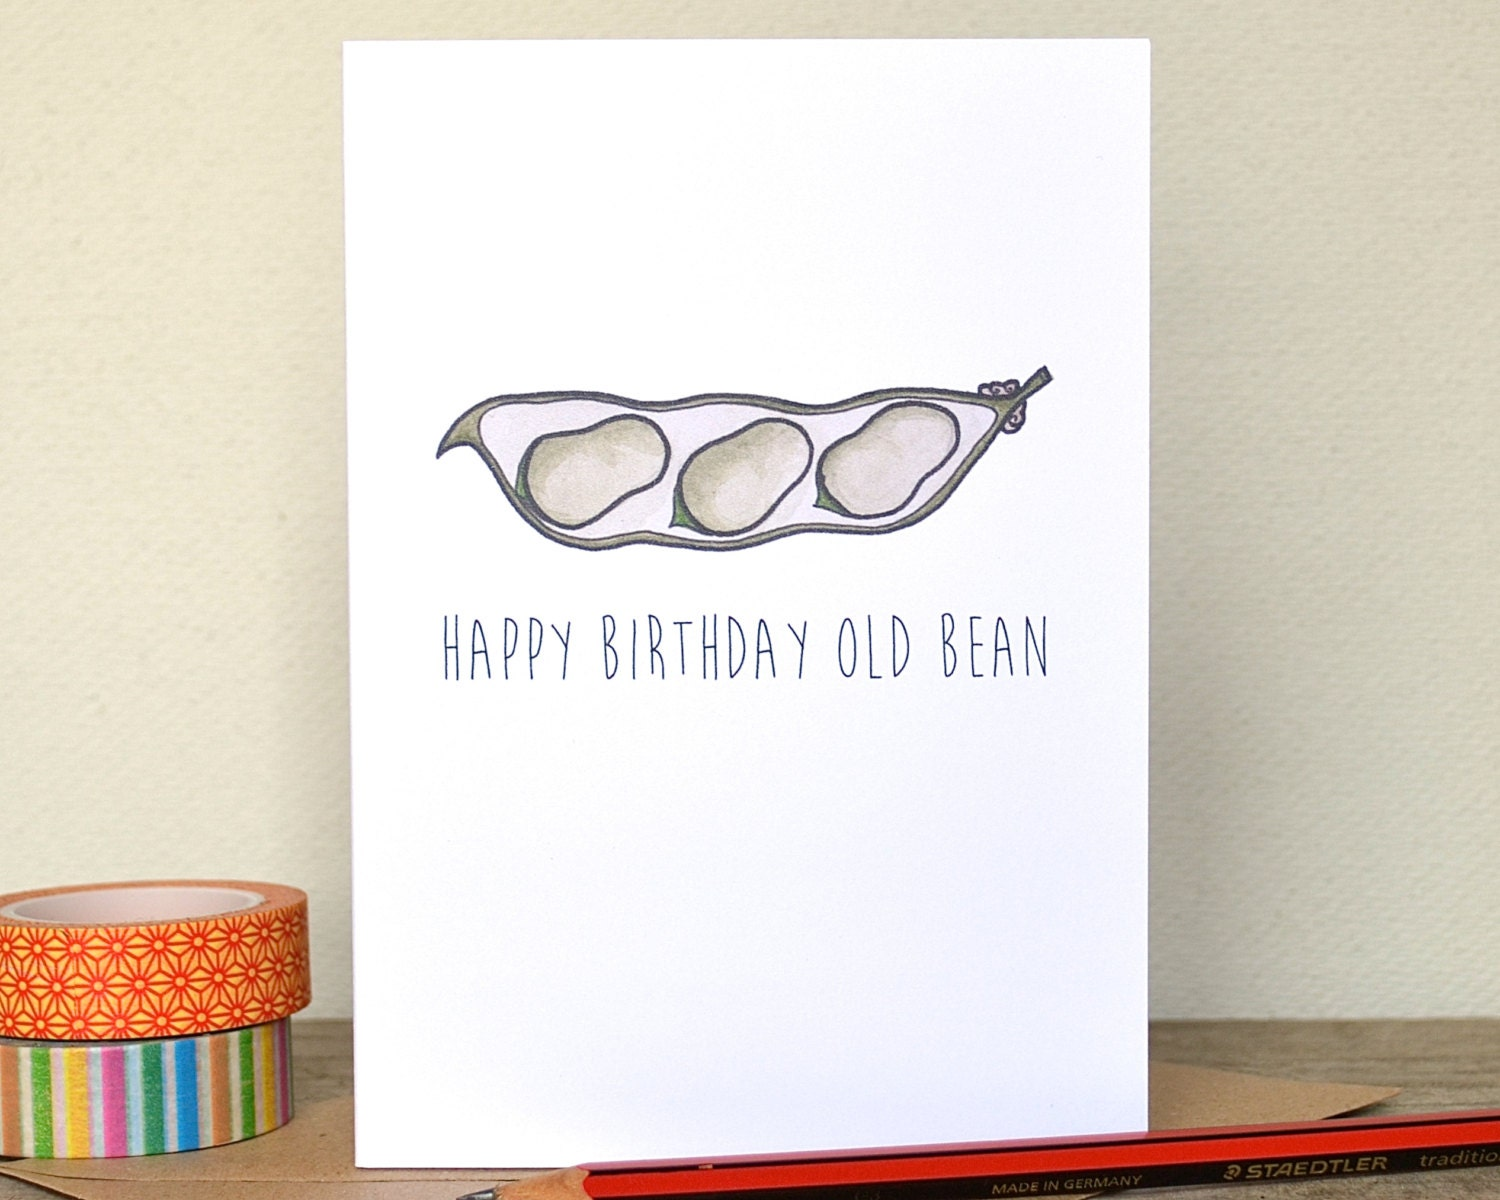 Happy Birthday Old Bean Card Pun Birthday Broad by BeckaGriffin